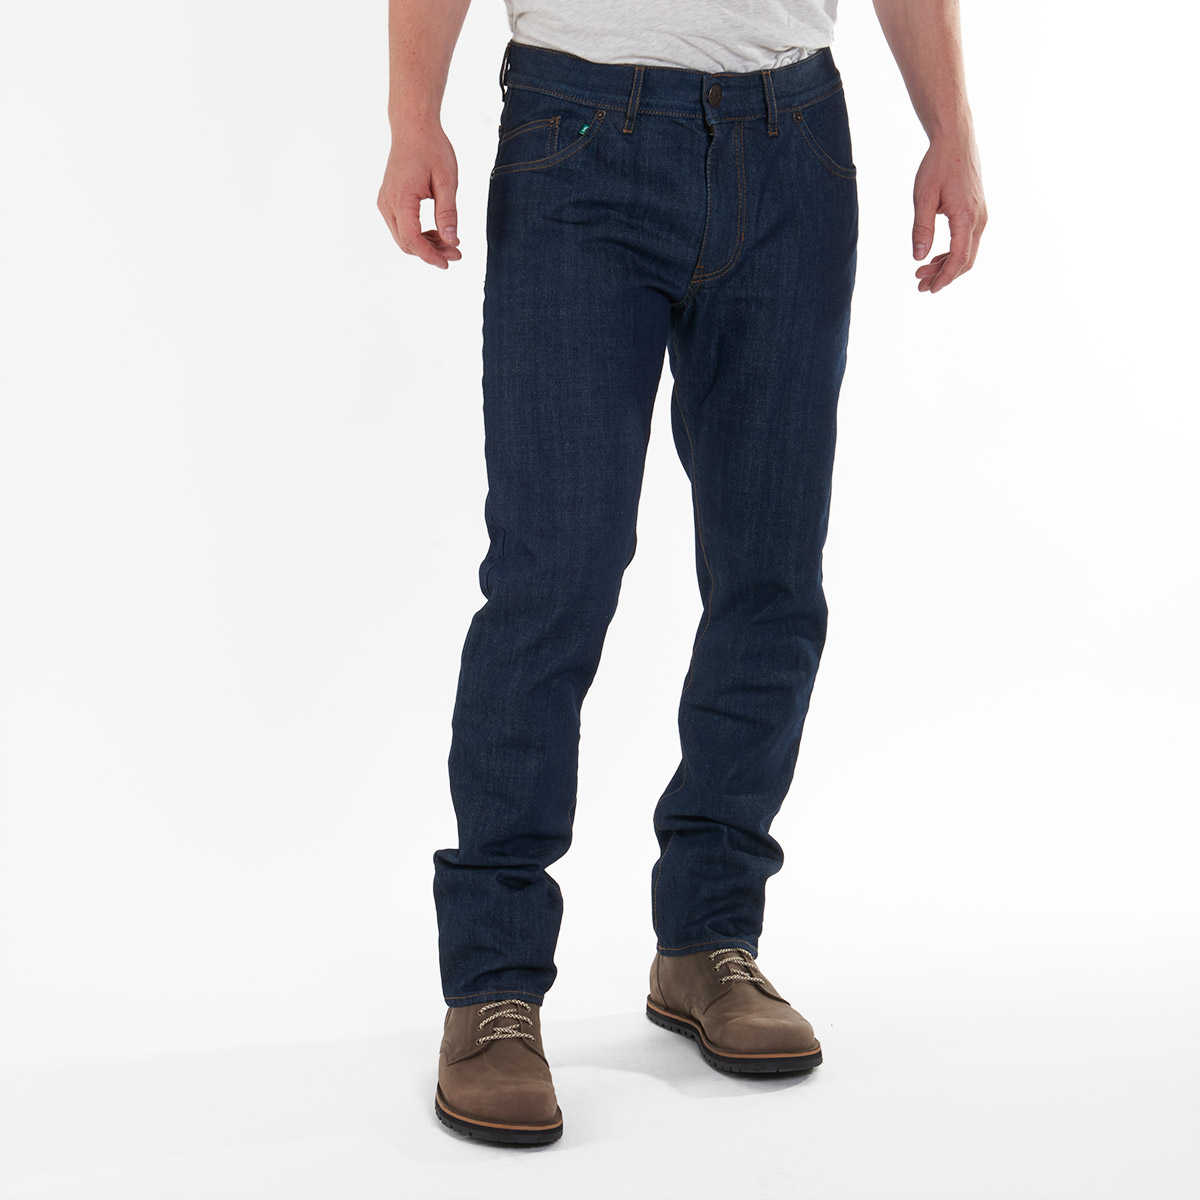 Relaxed - Navy - pure Cotton